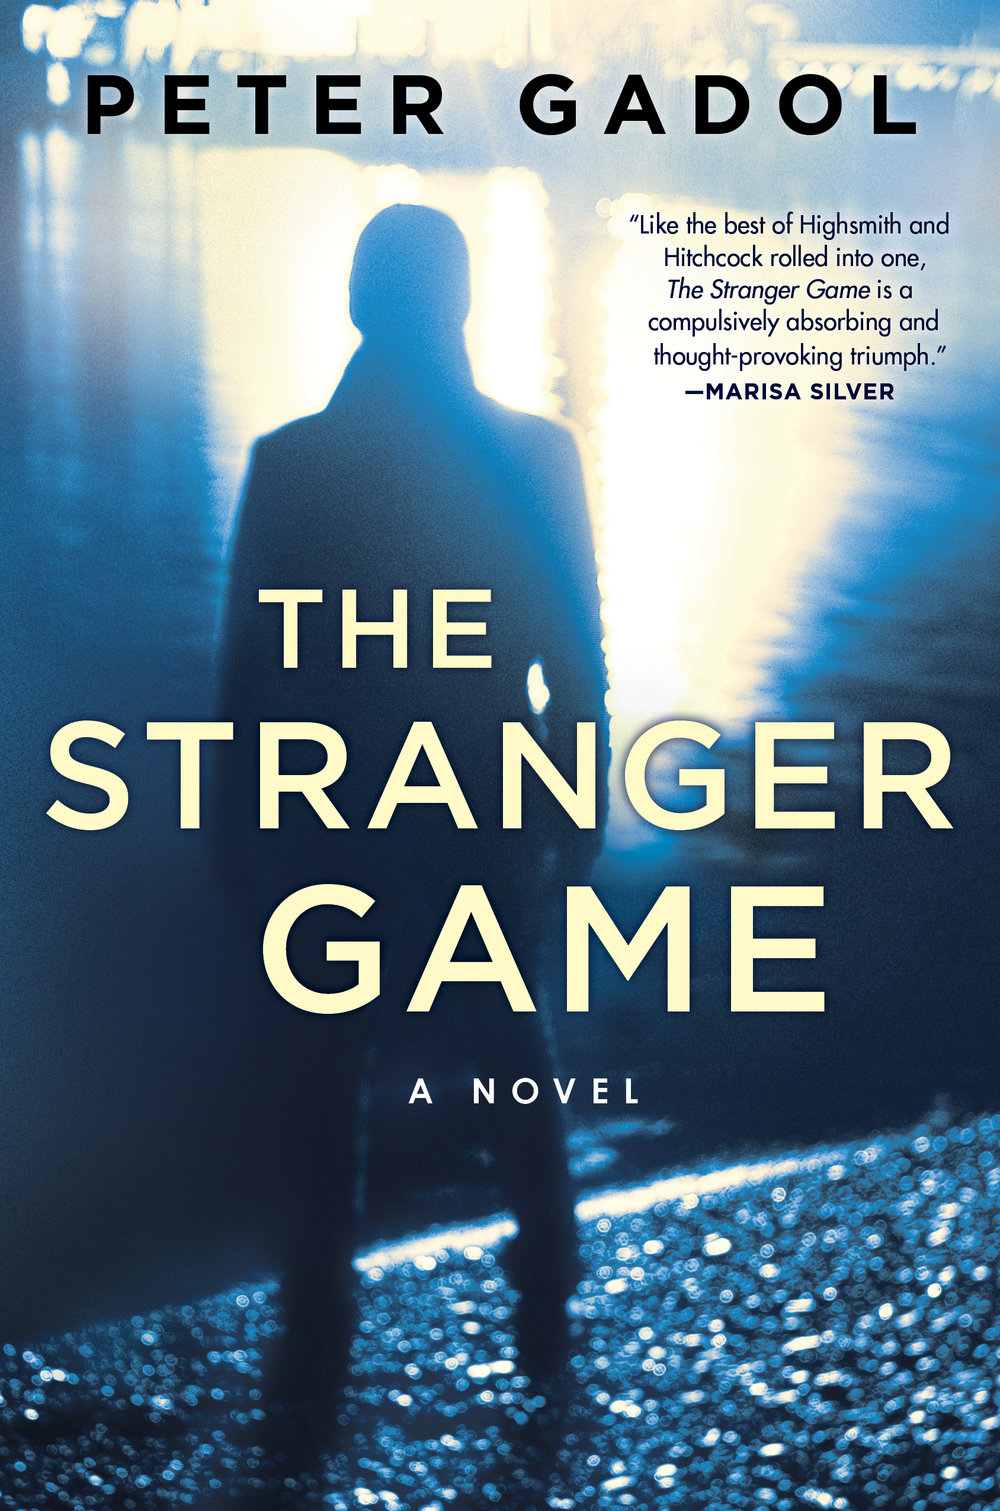 The Stranger Game Final Cover.jpg